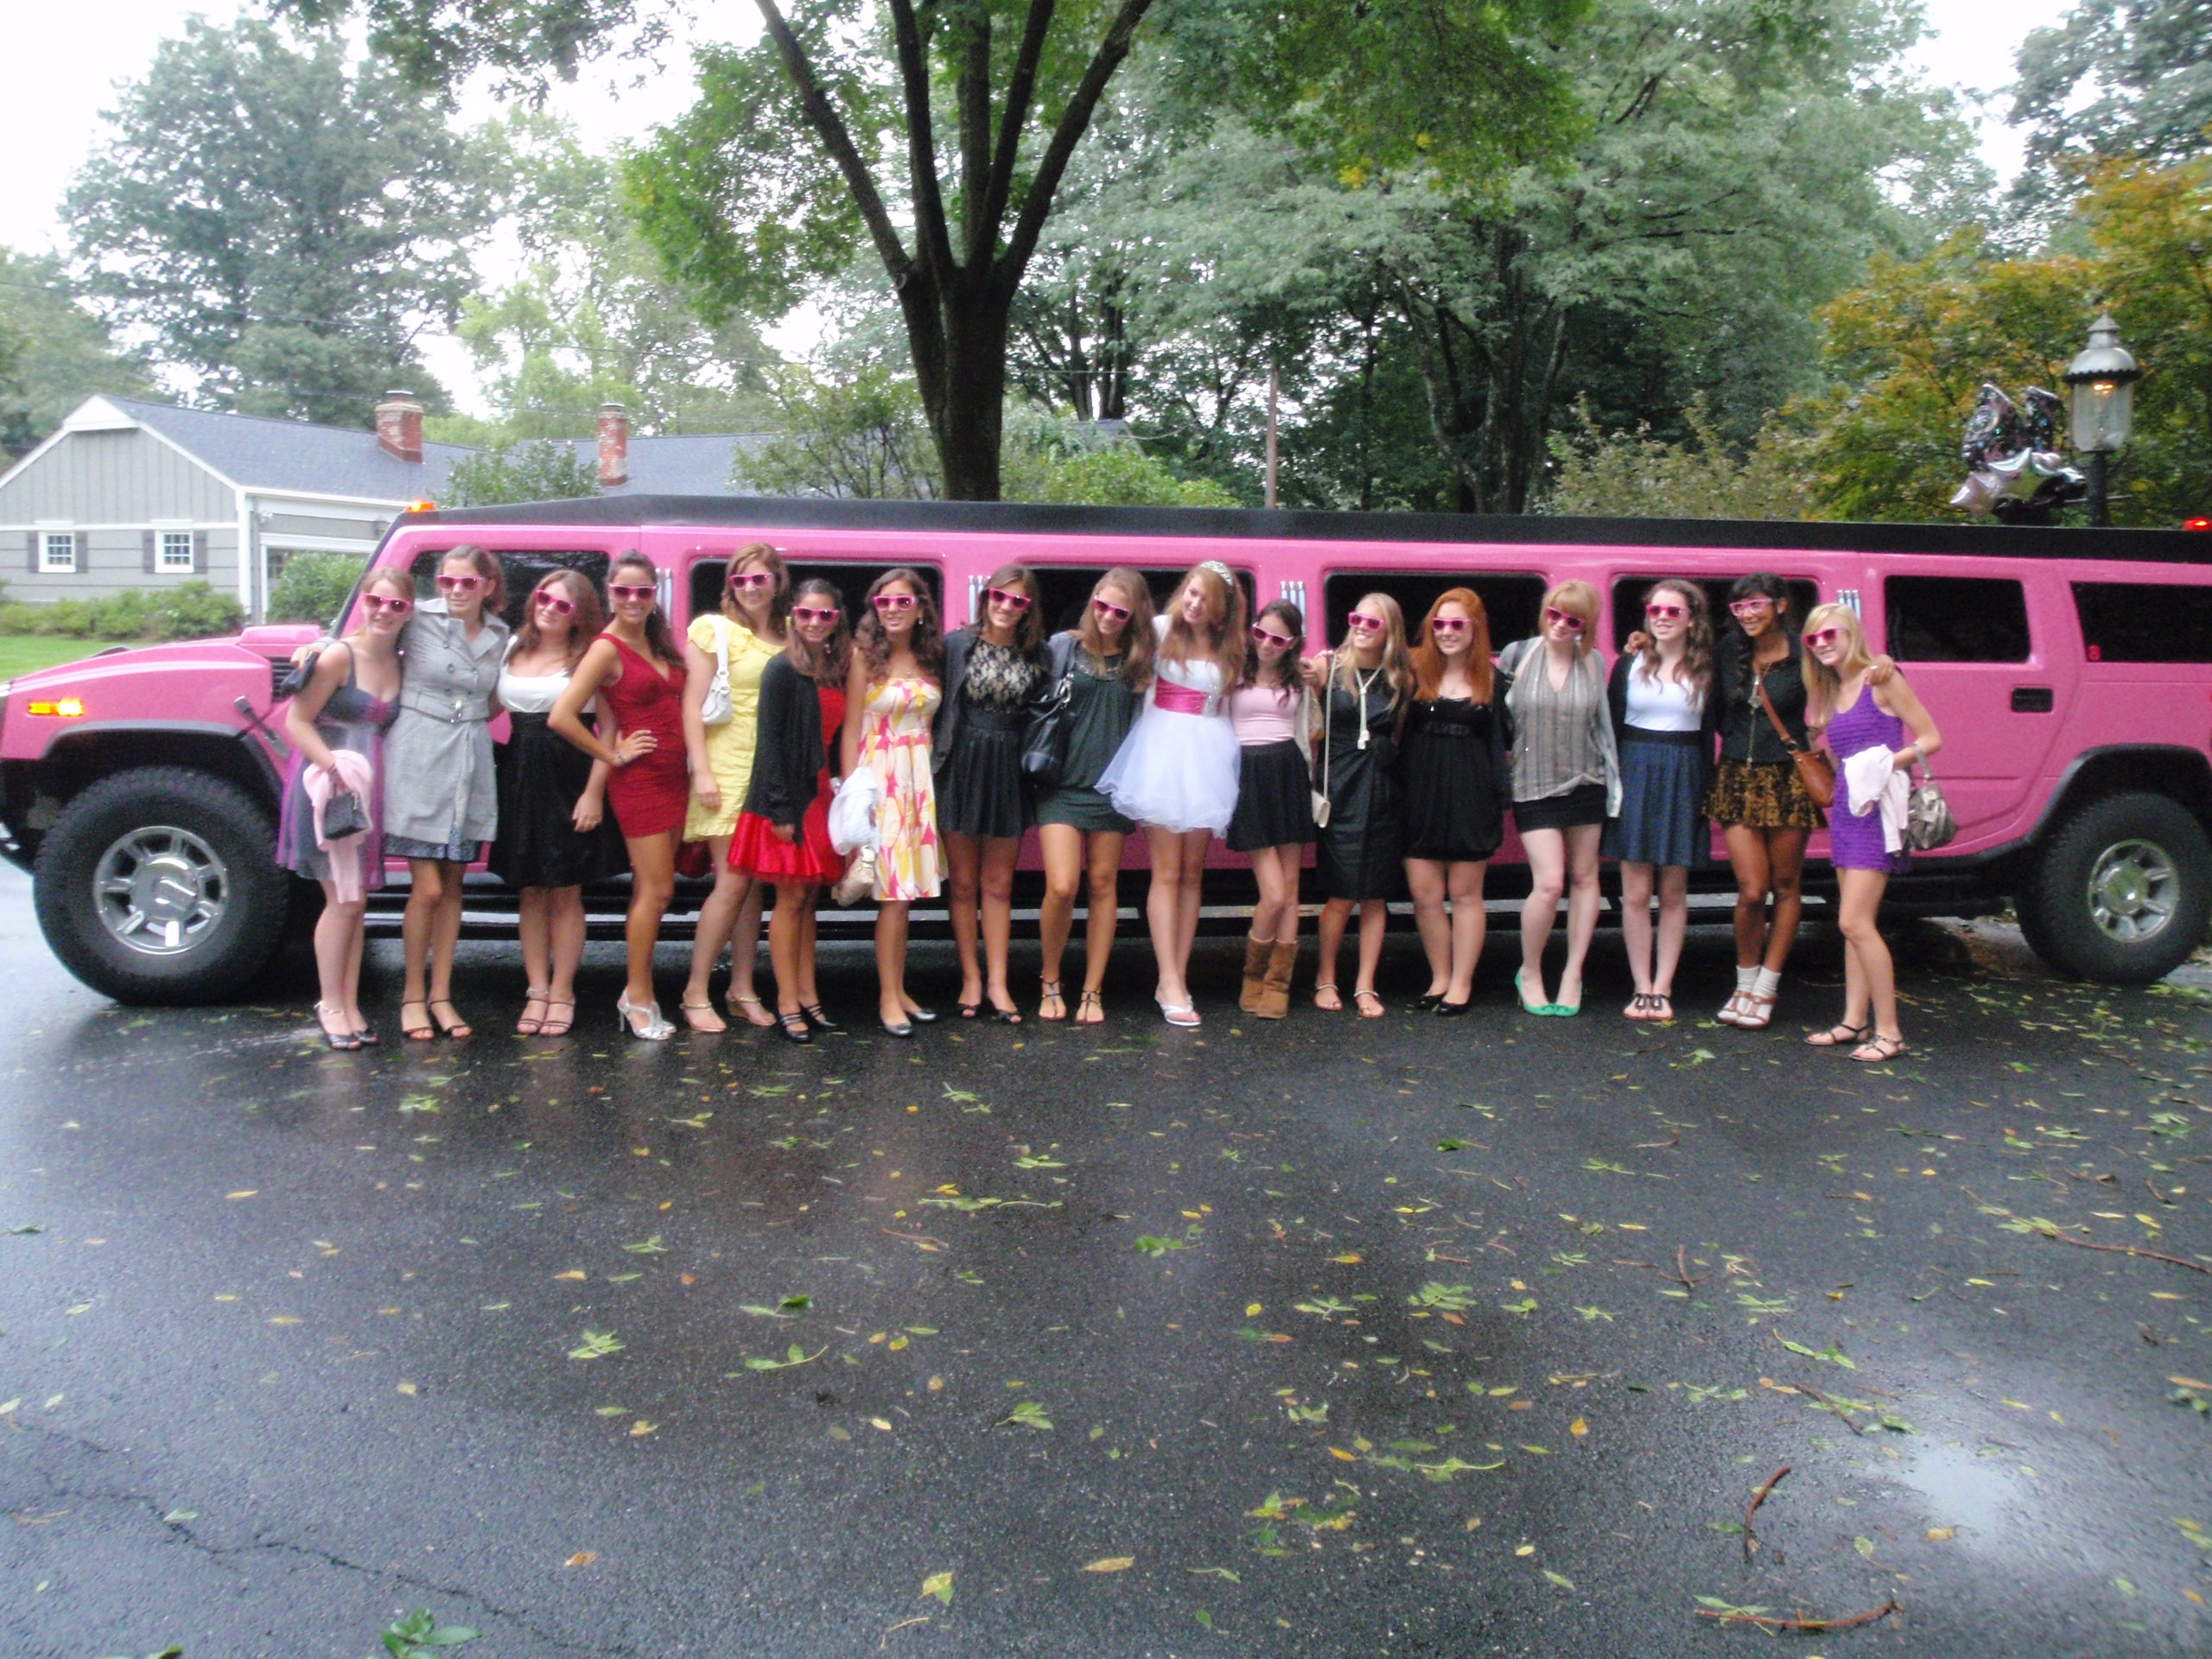 Rent a Pink Hummer Limo in NYC for a 16th Birthday Party